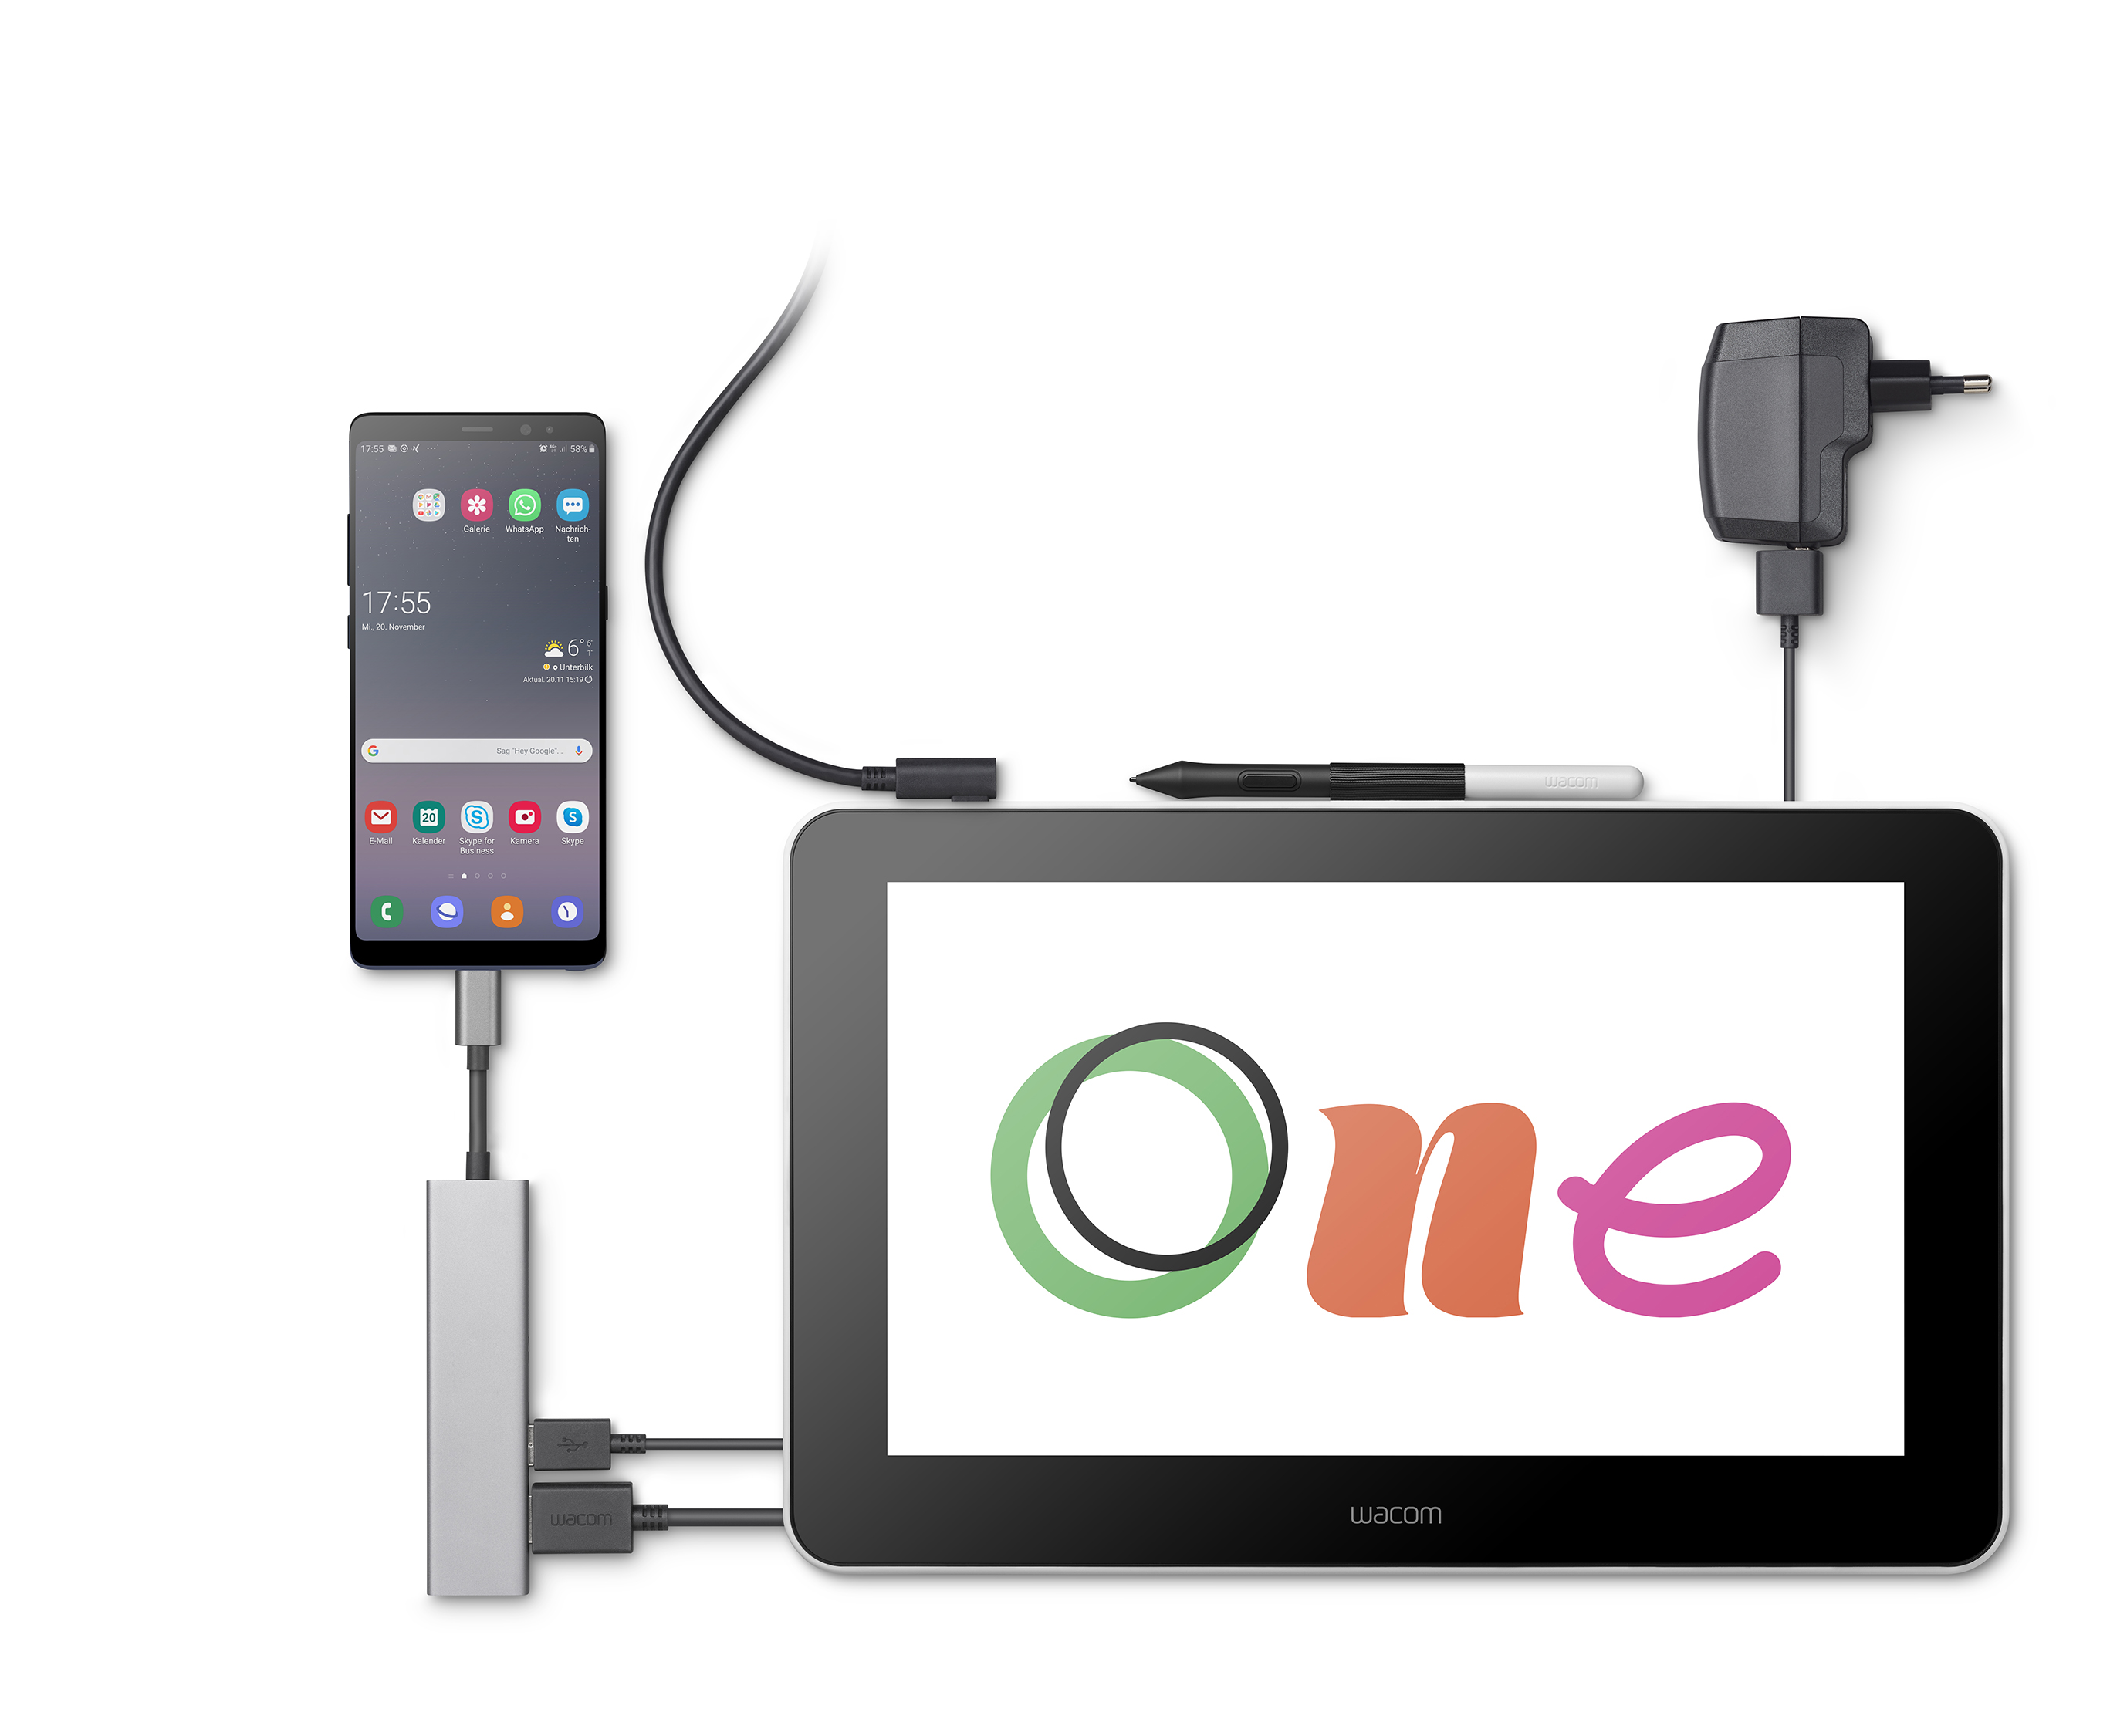 WacomOne_Smartphone_One